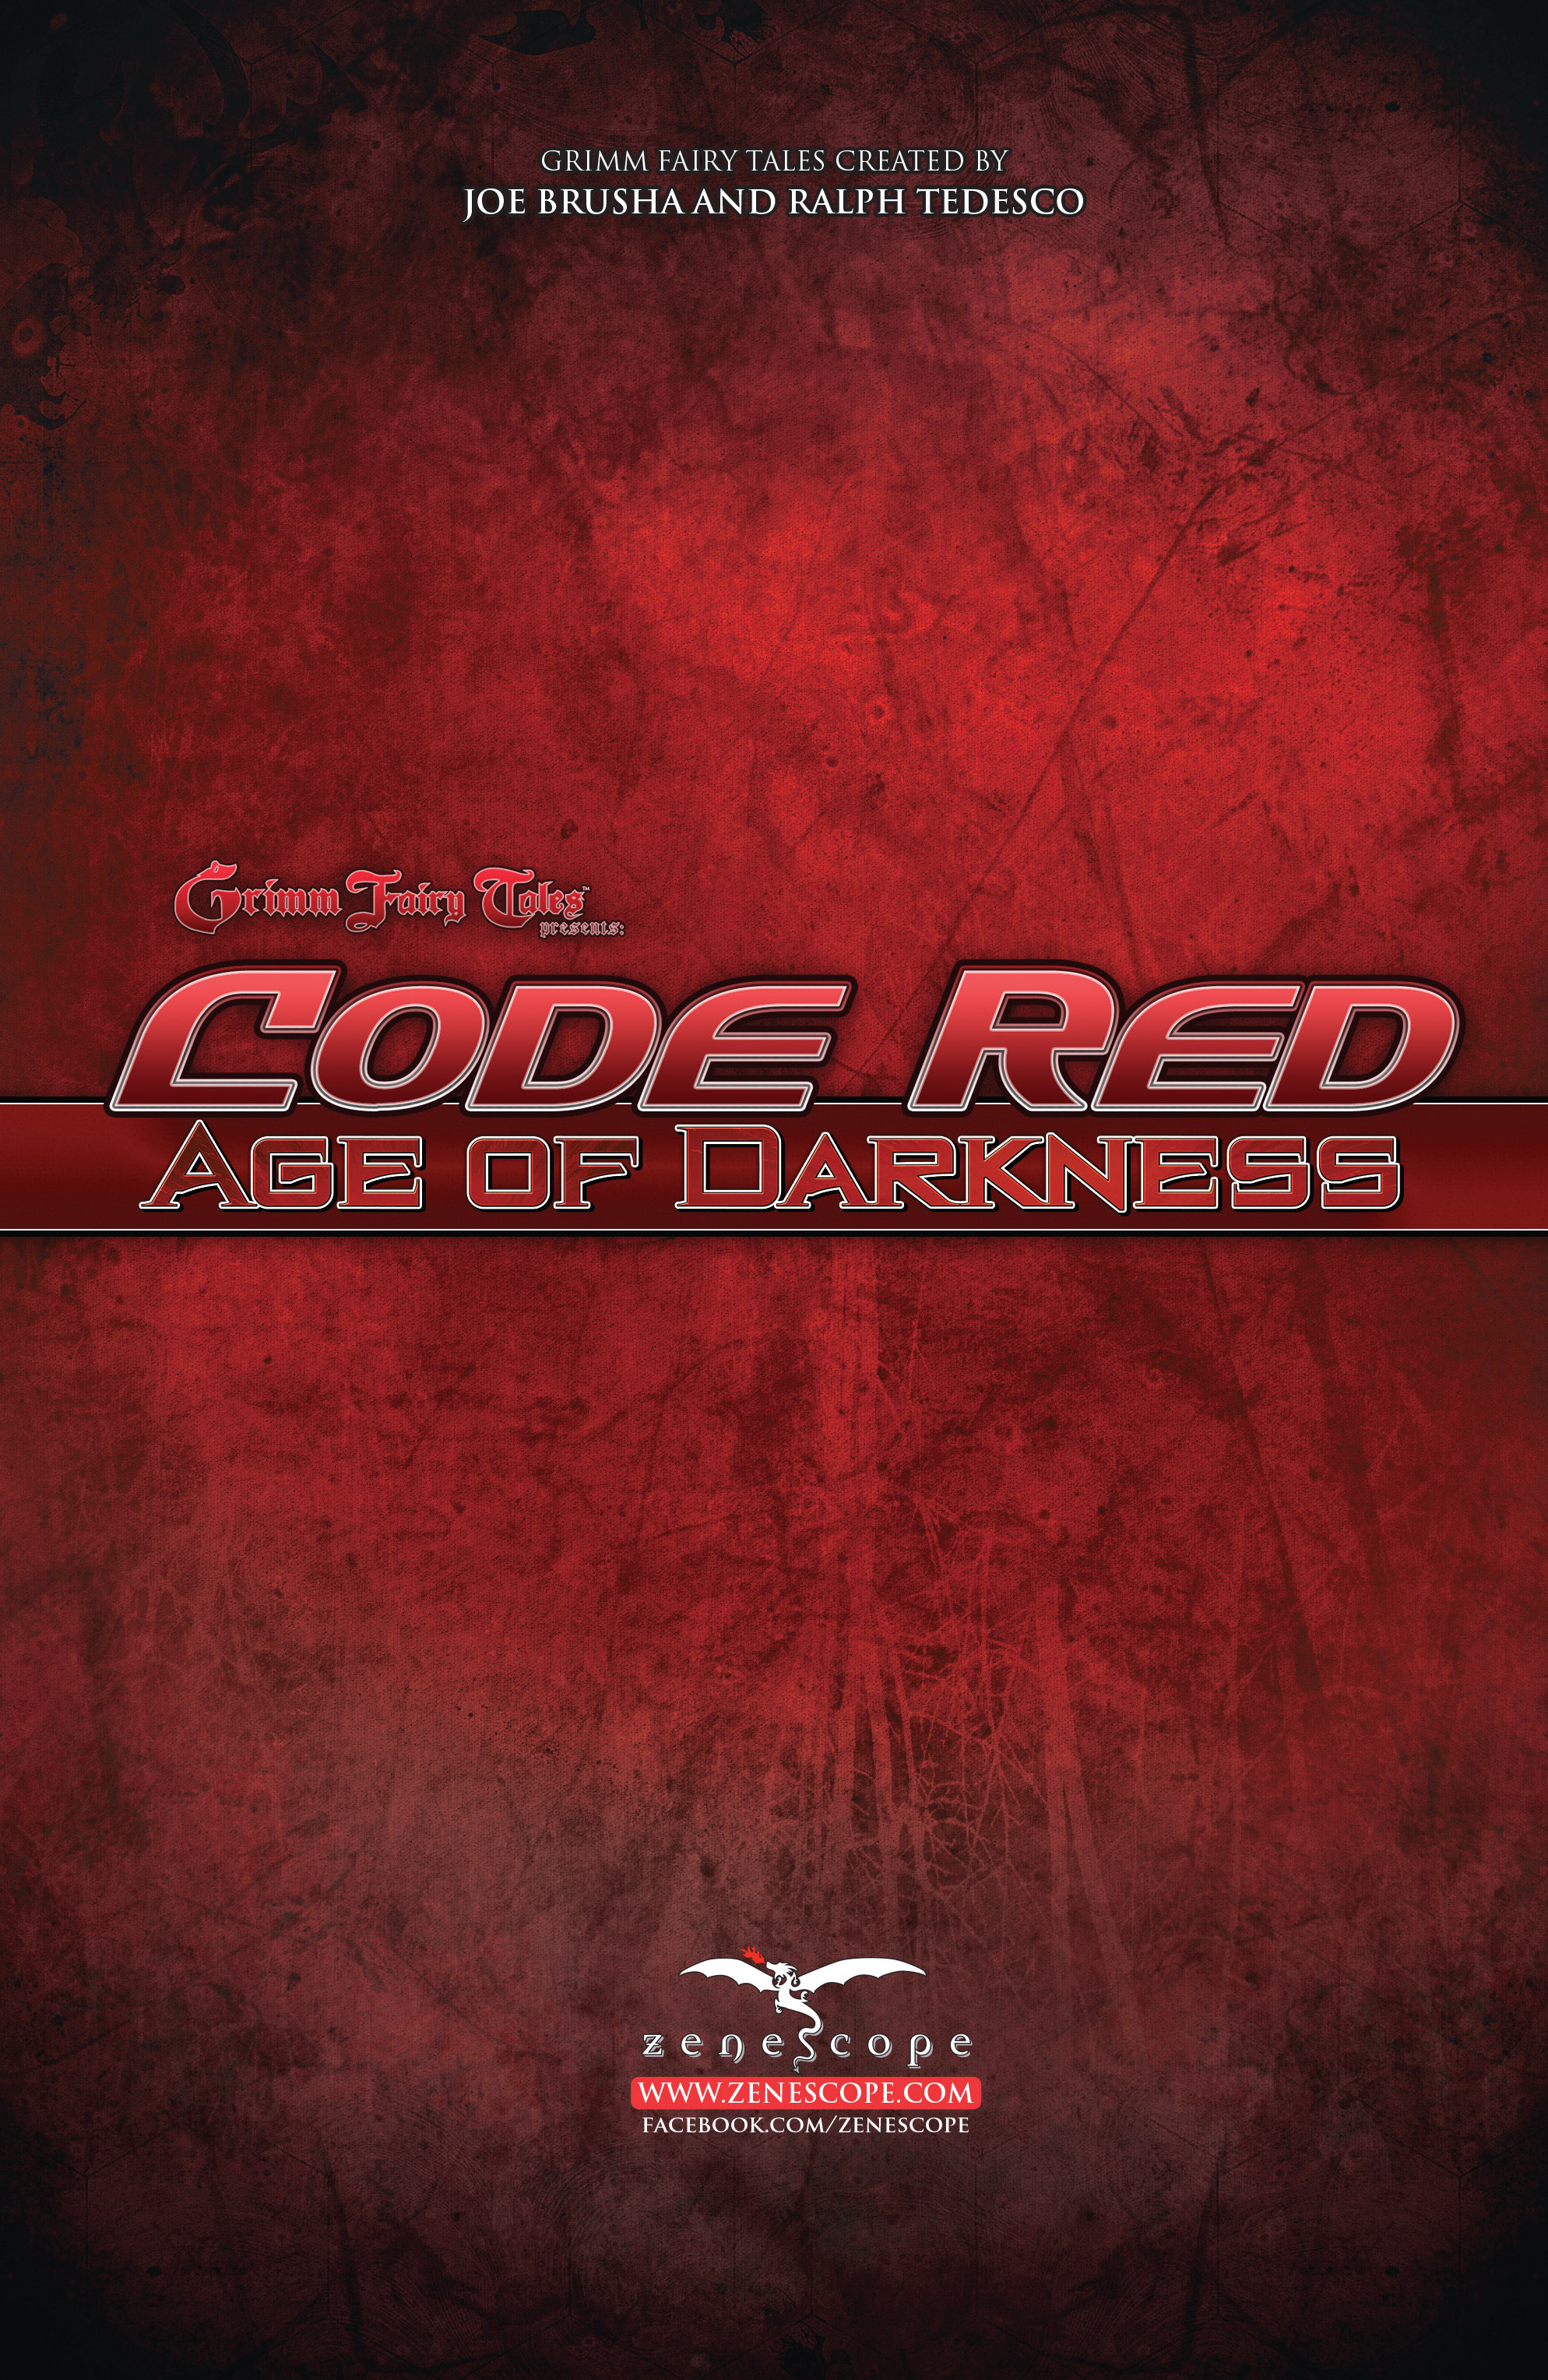 Read online Grimm Fairy Tales presents Code Red comic -  Issue # TPB - 2